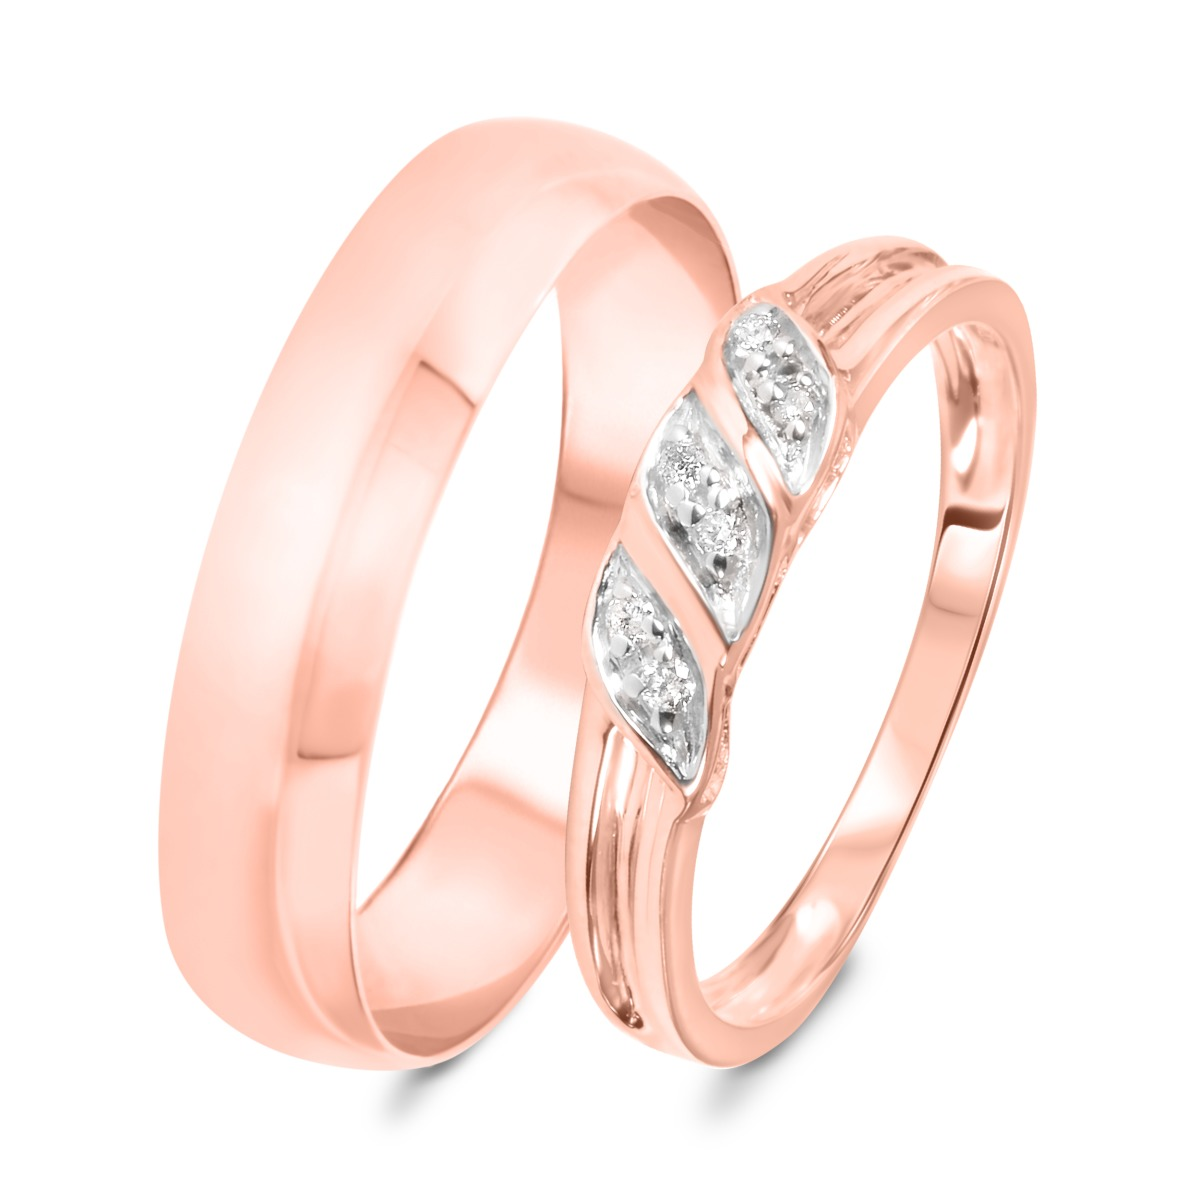 1/15 Carat T.W. Round Cut Diamond His and Hers Wedding Band Set 10K Rose Gold